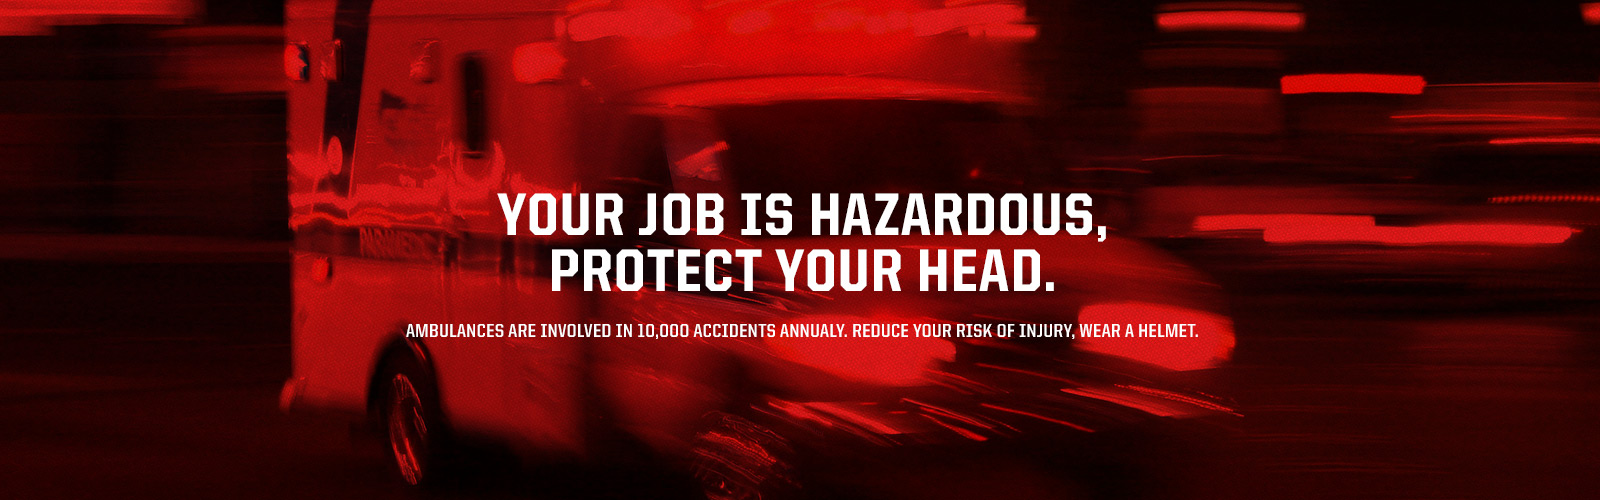 Ambulances Are Involved in 10,000 Accidents Annually. Reduce Your Risk of Injury, Wear a Helmet.